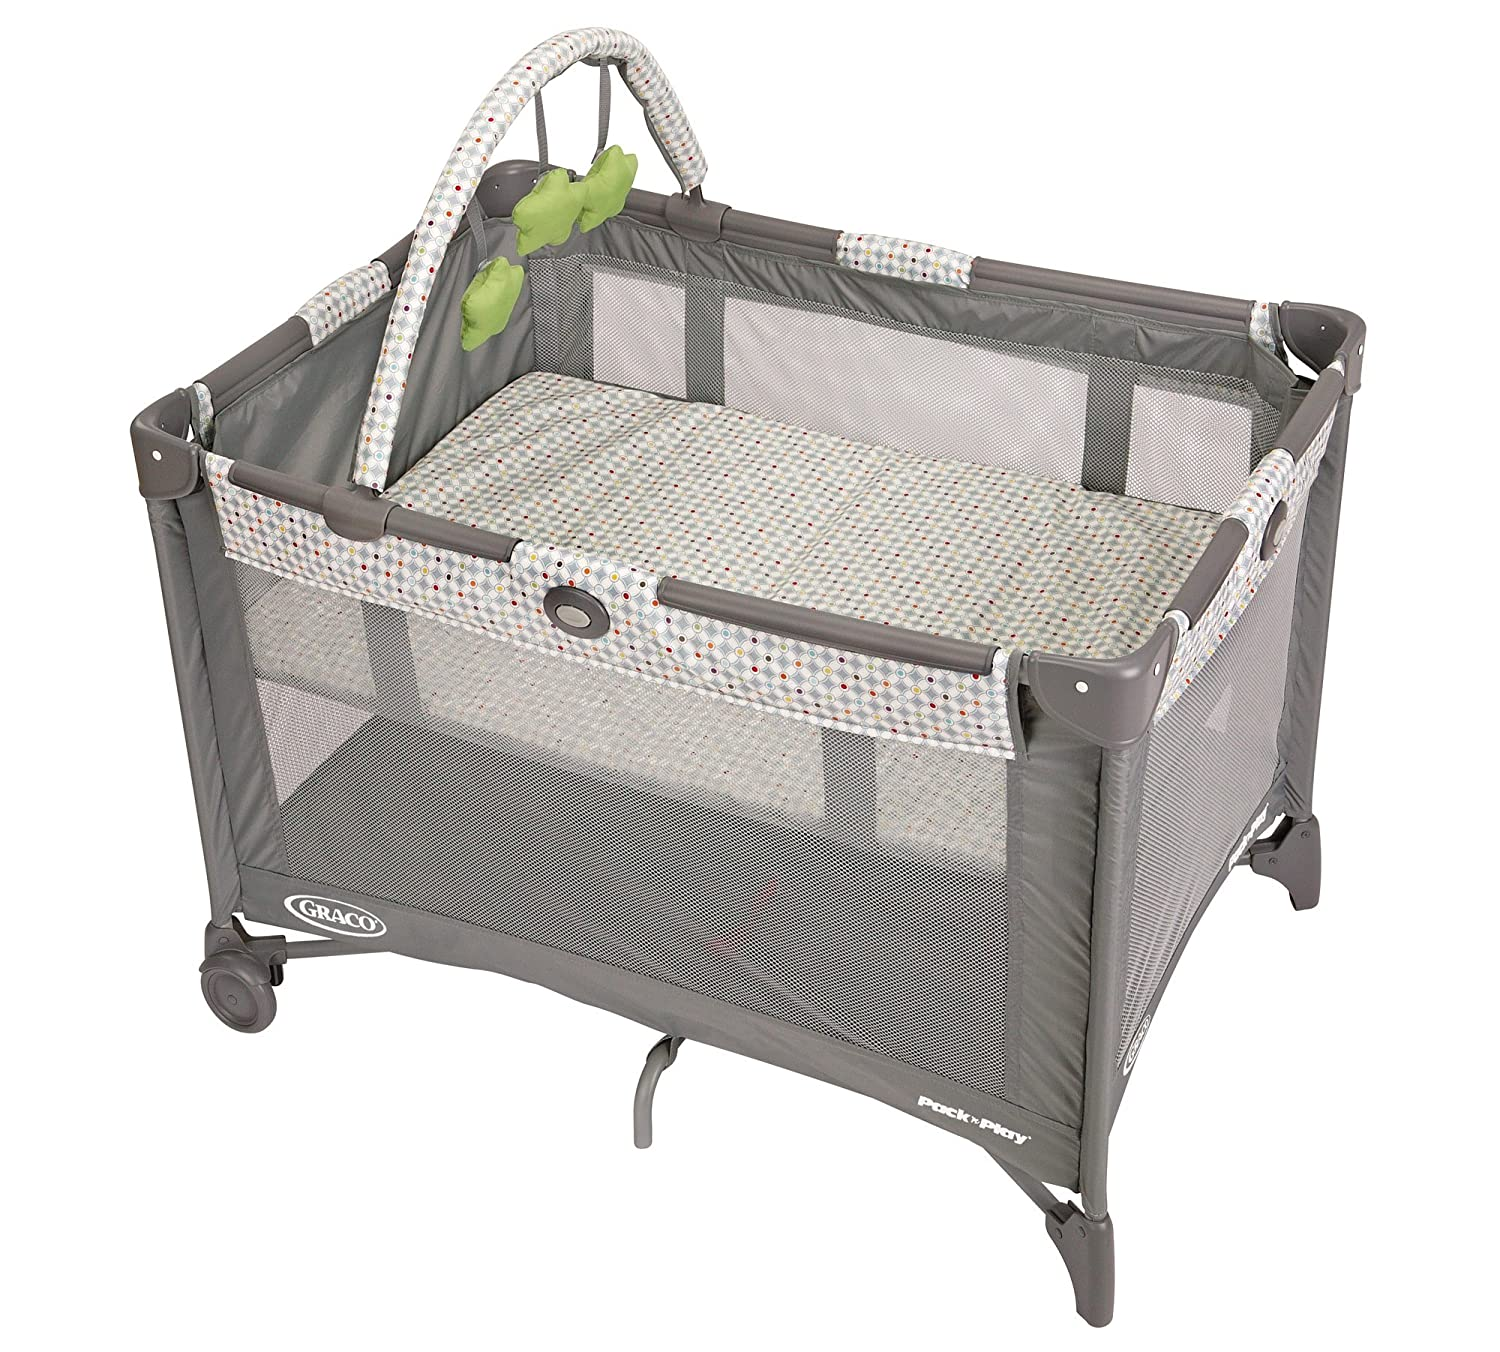 Amazon.com: Furniture - Nursery: Baby: Cribs & Nursery Beds